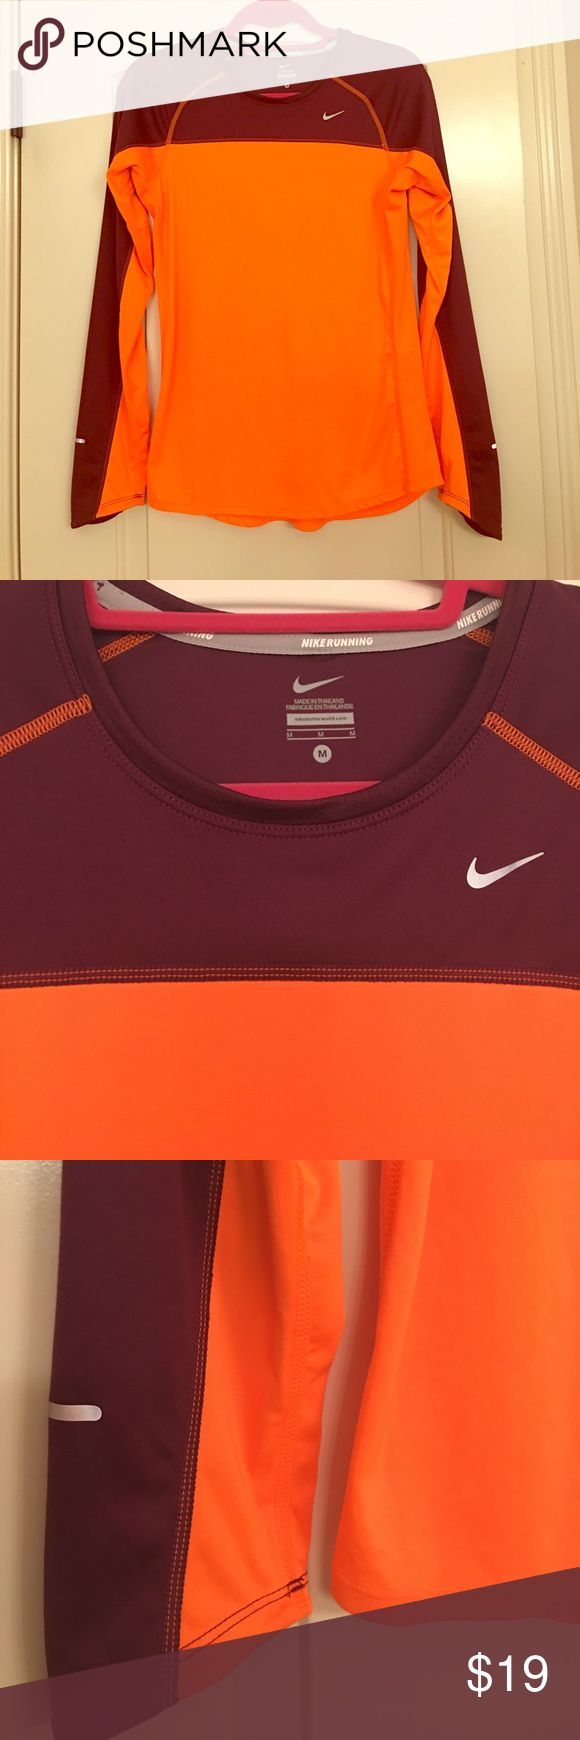 NIKE Running Women's Long Sleeve Shirt, Size M NIKE Running Women's Long Sleeve Shirt, Size M, Excellent condition. Bright orange and maroon color. Great for running outdoors to be seen easily. Looking to go to a great 2nd home! Nike Tops Tees - Long Sleeve